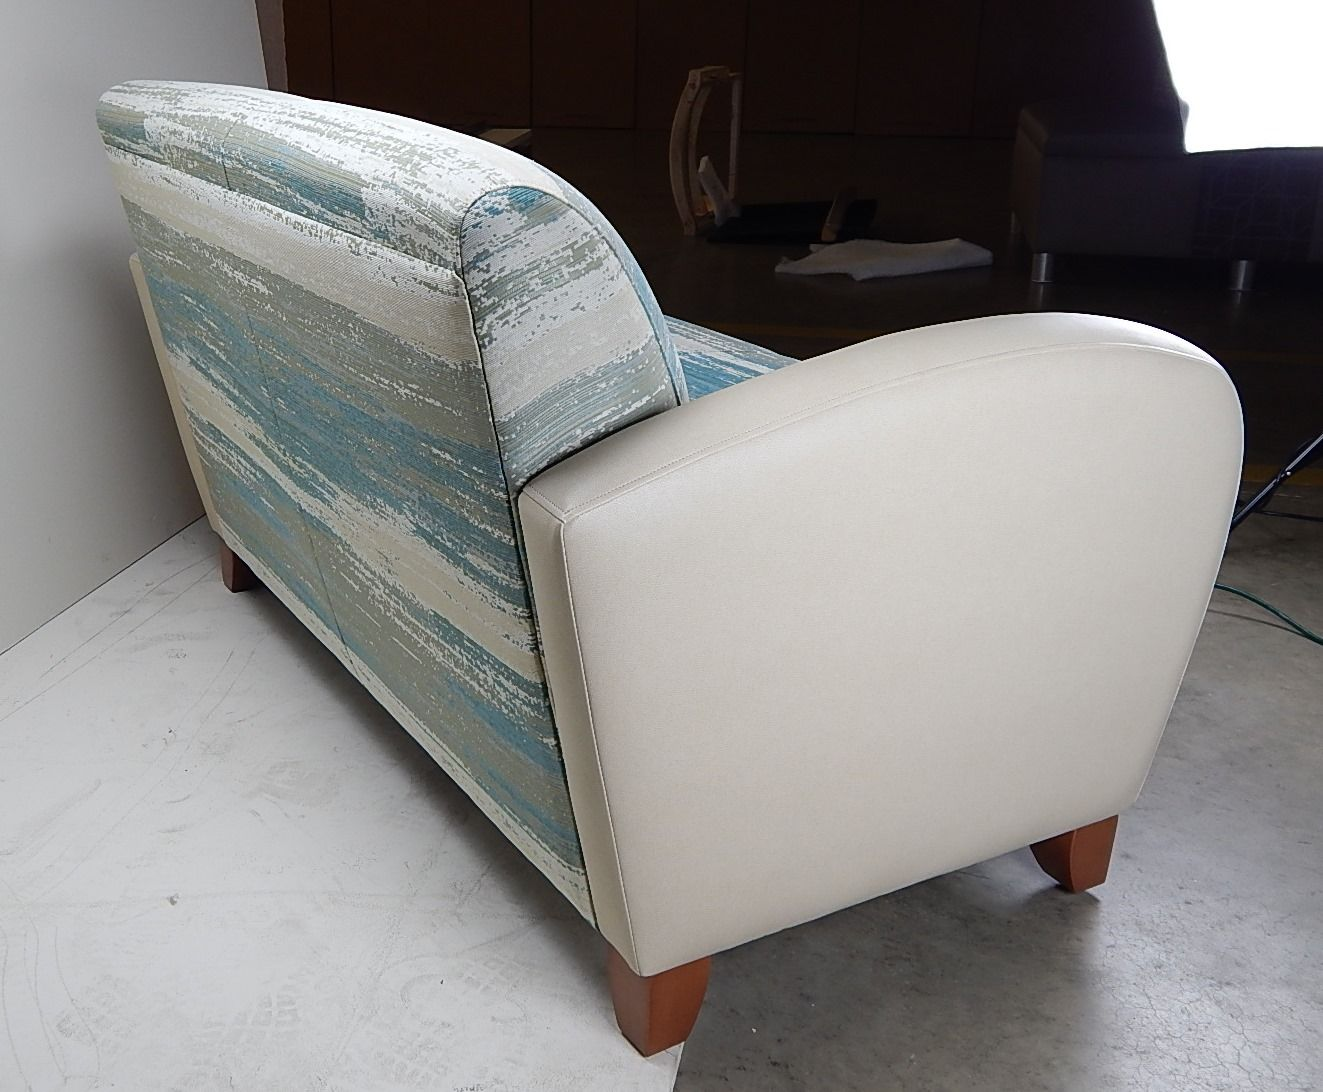 Crosby Loveseat With Seat|back In CF Stinson | Vapor | Color: Surf